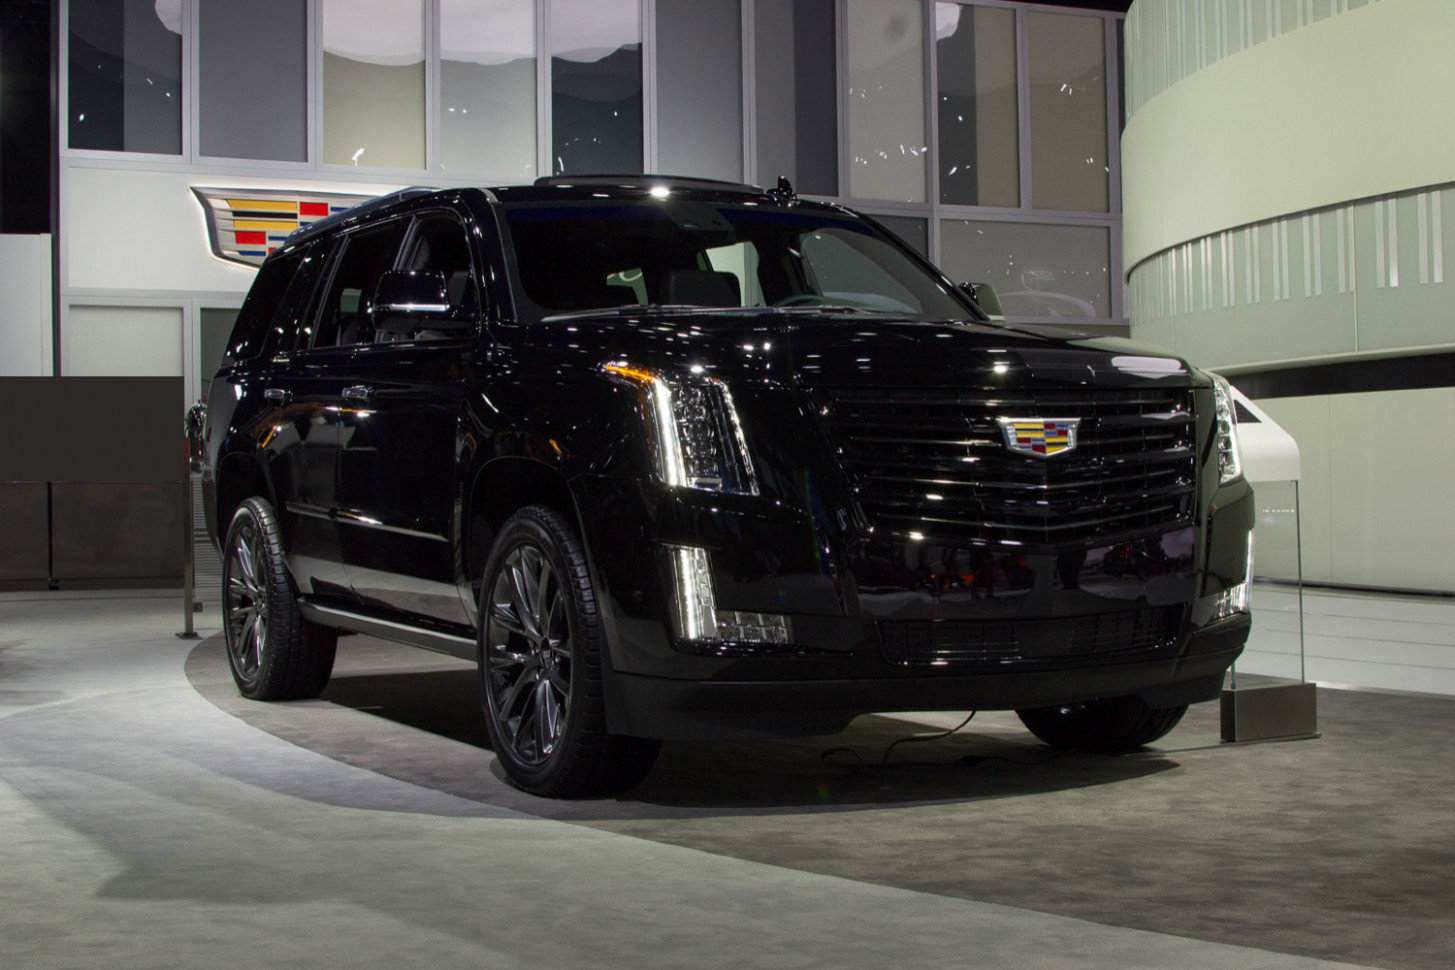 Overview Pictures Of The 2022 Cadillac Escalade